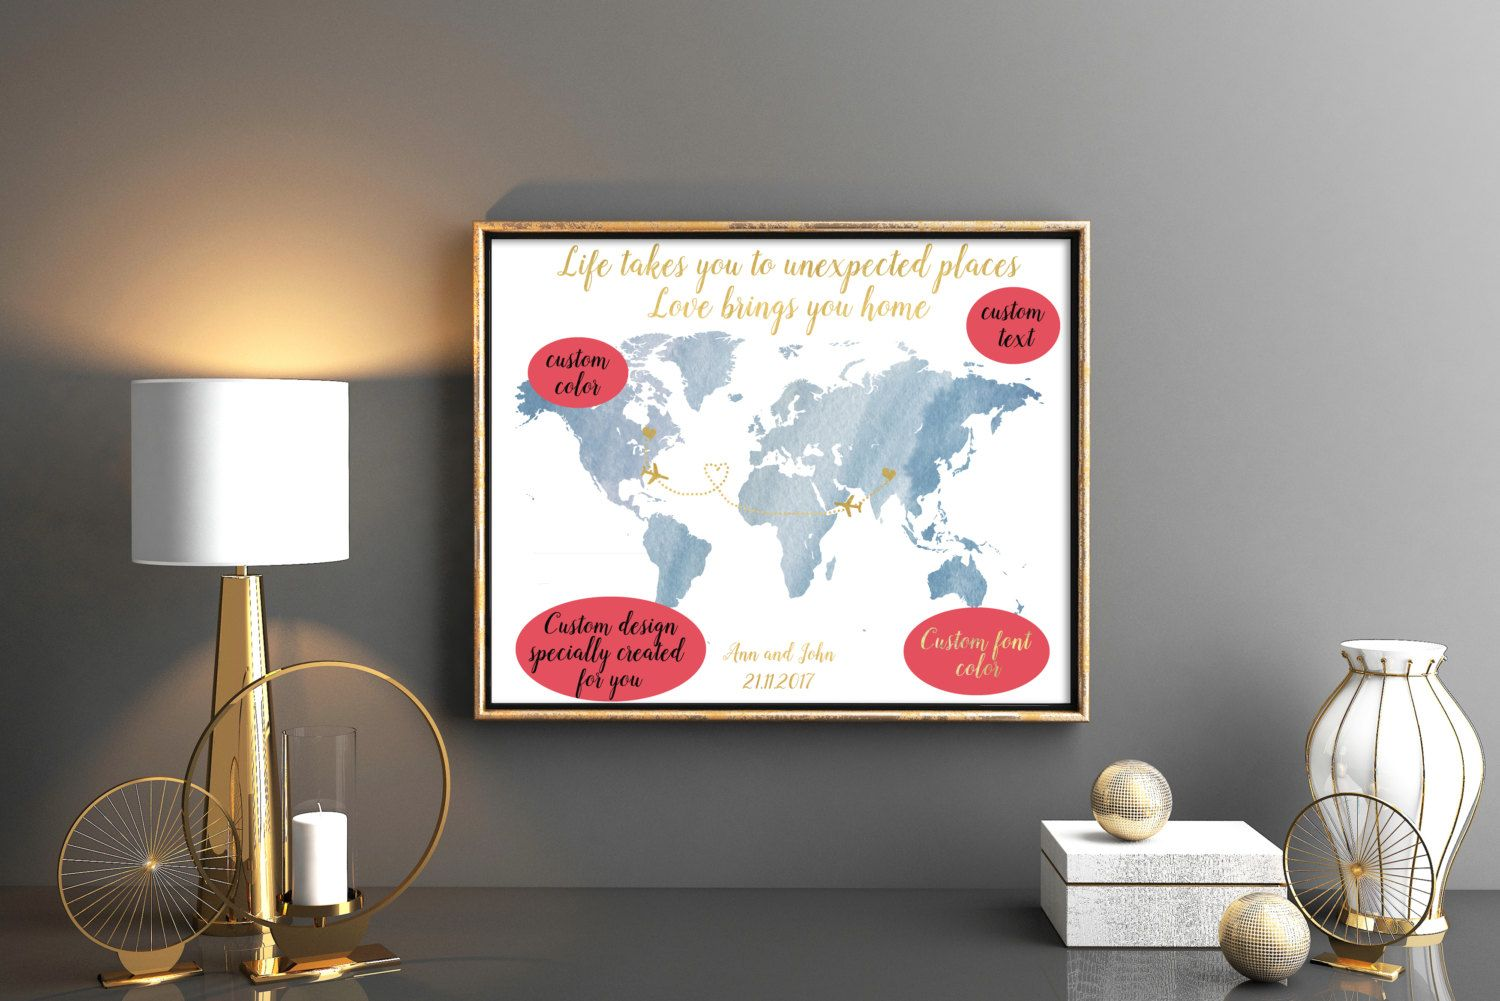 Map guest book world map guest book map wedding guest book wedding blush pink wedding guestbooks wedding guest book world map guest book world map wedding wedding guestbook map wedding map guest book by kompostela on etsy gumiabroncs Image collections